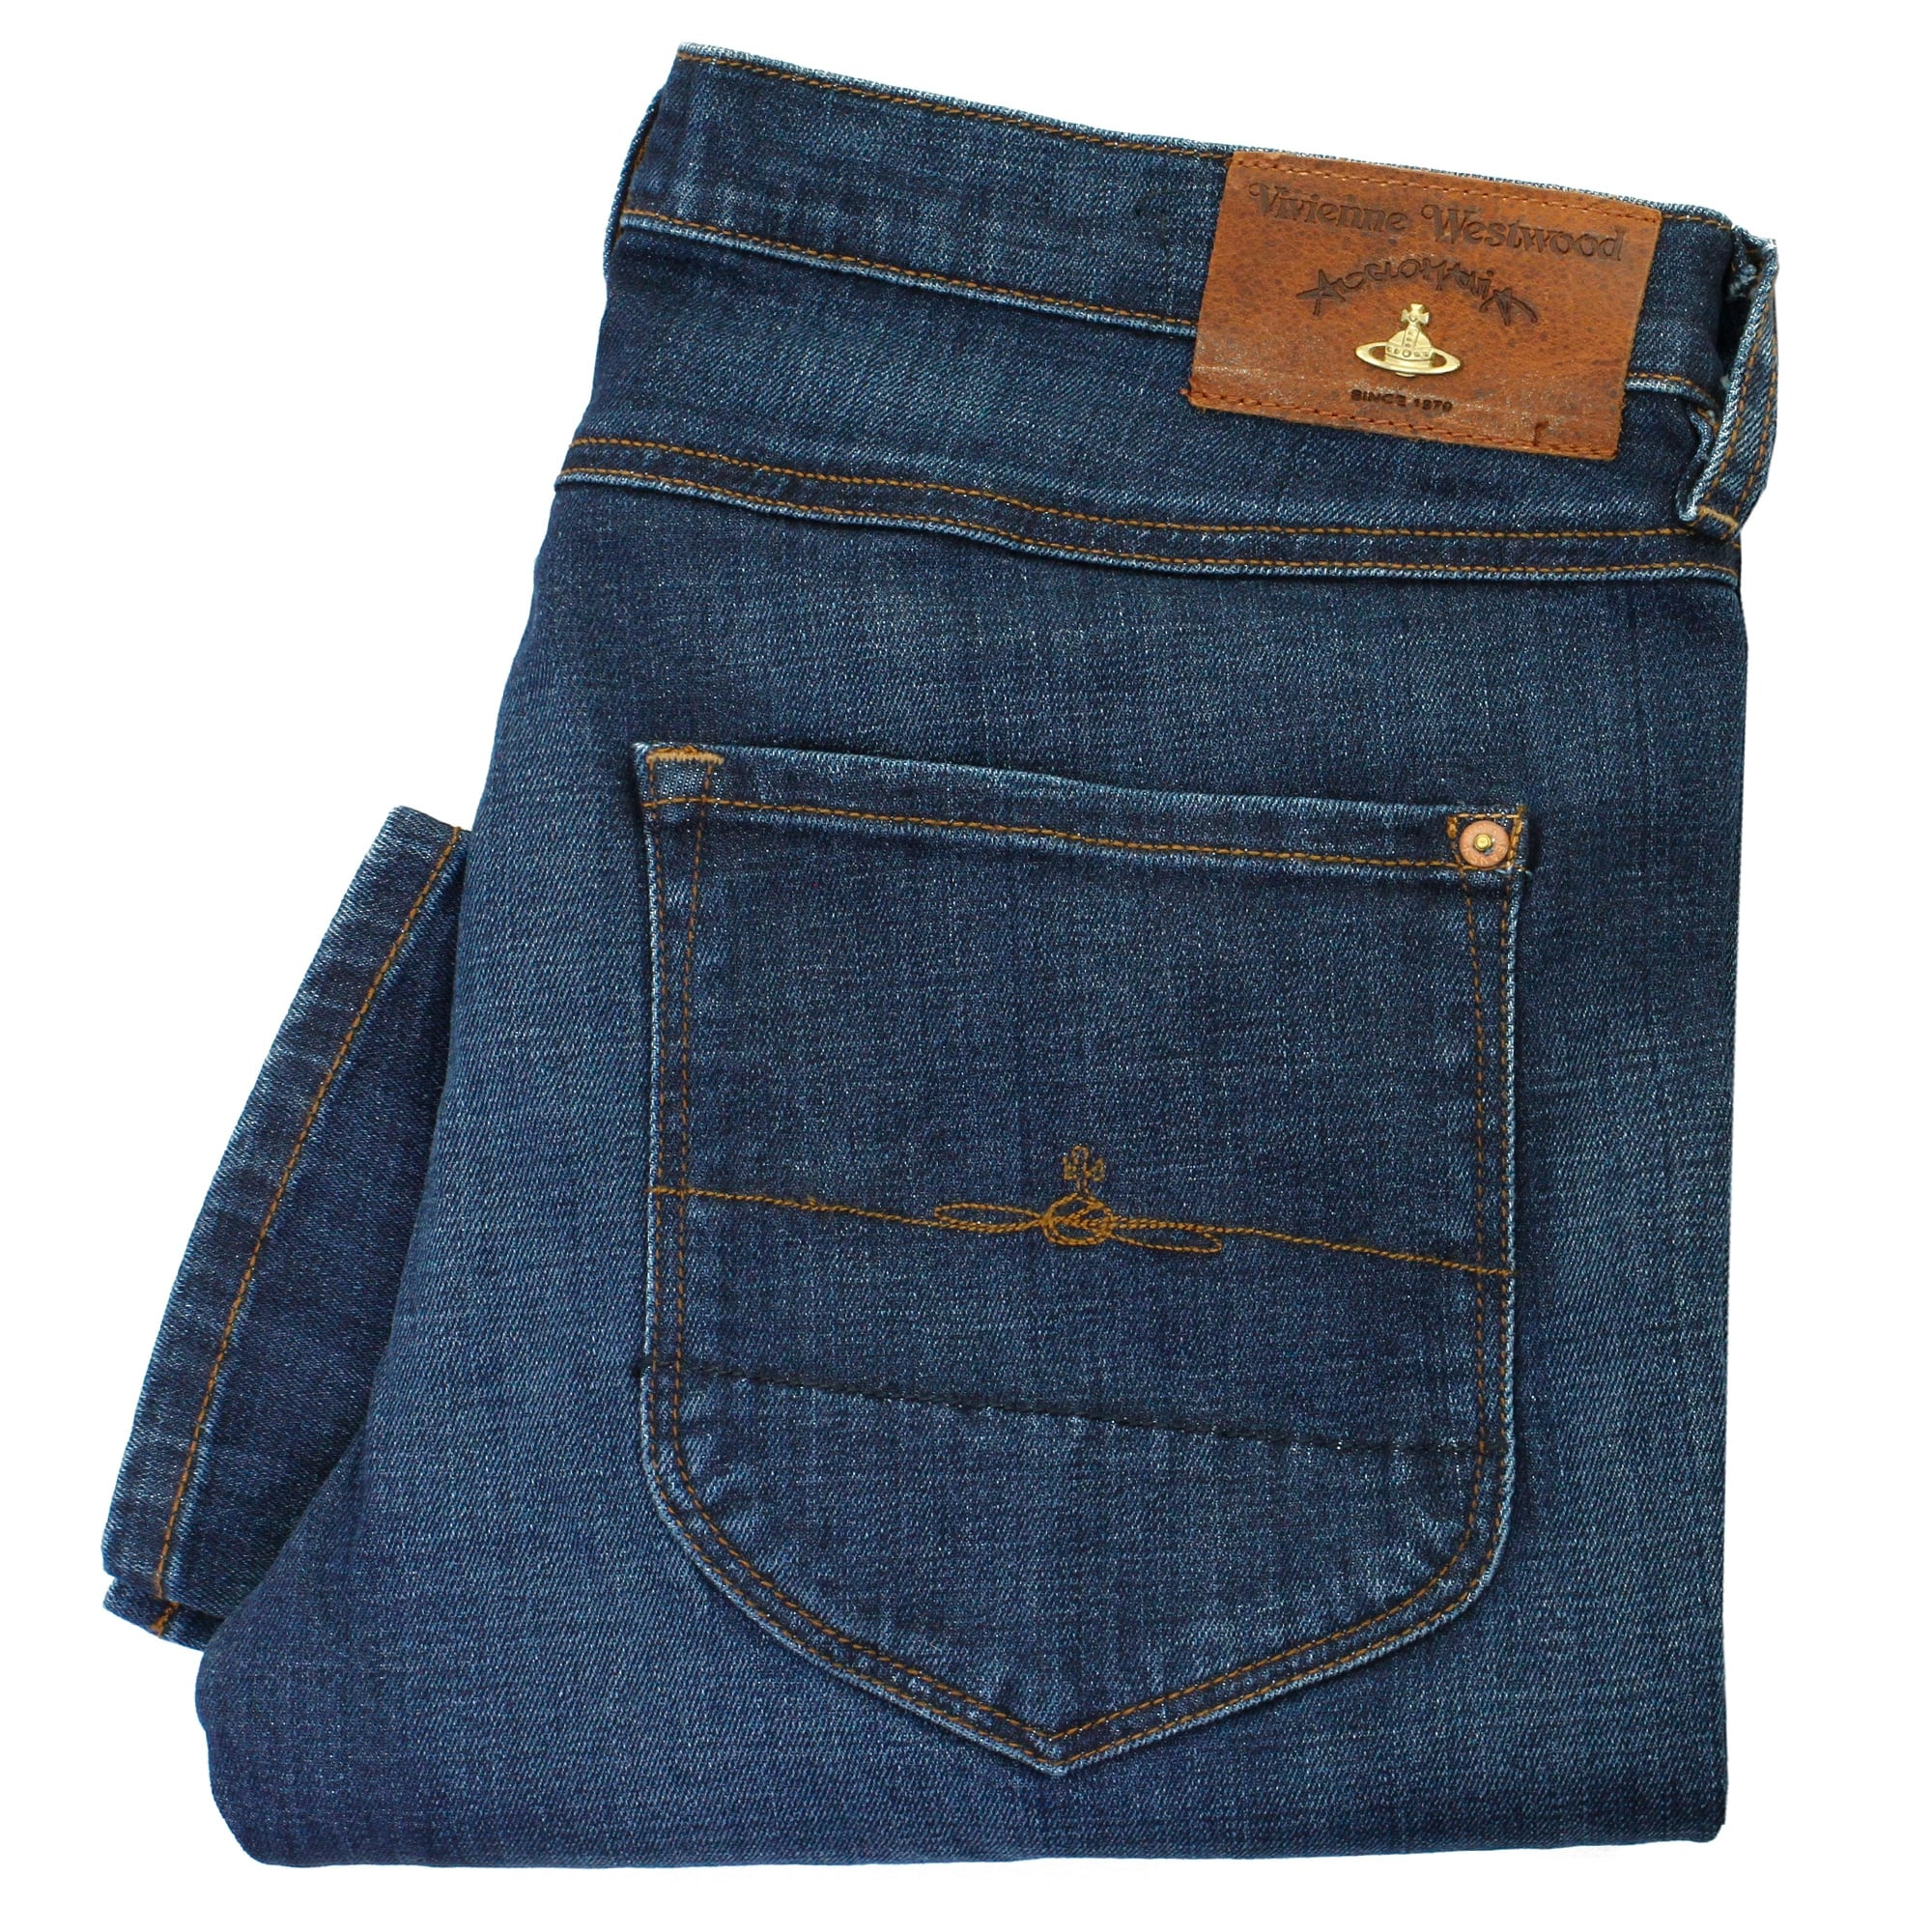 Vivienne Westwood New Classic Tapered Blue Denim Jeans DS0IK5